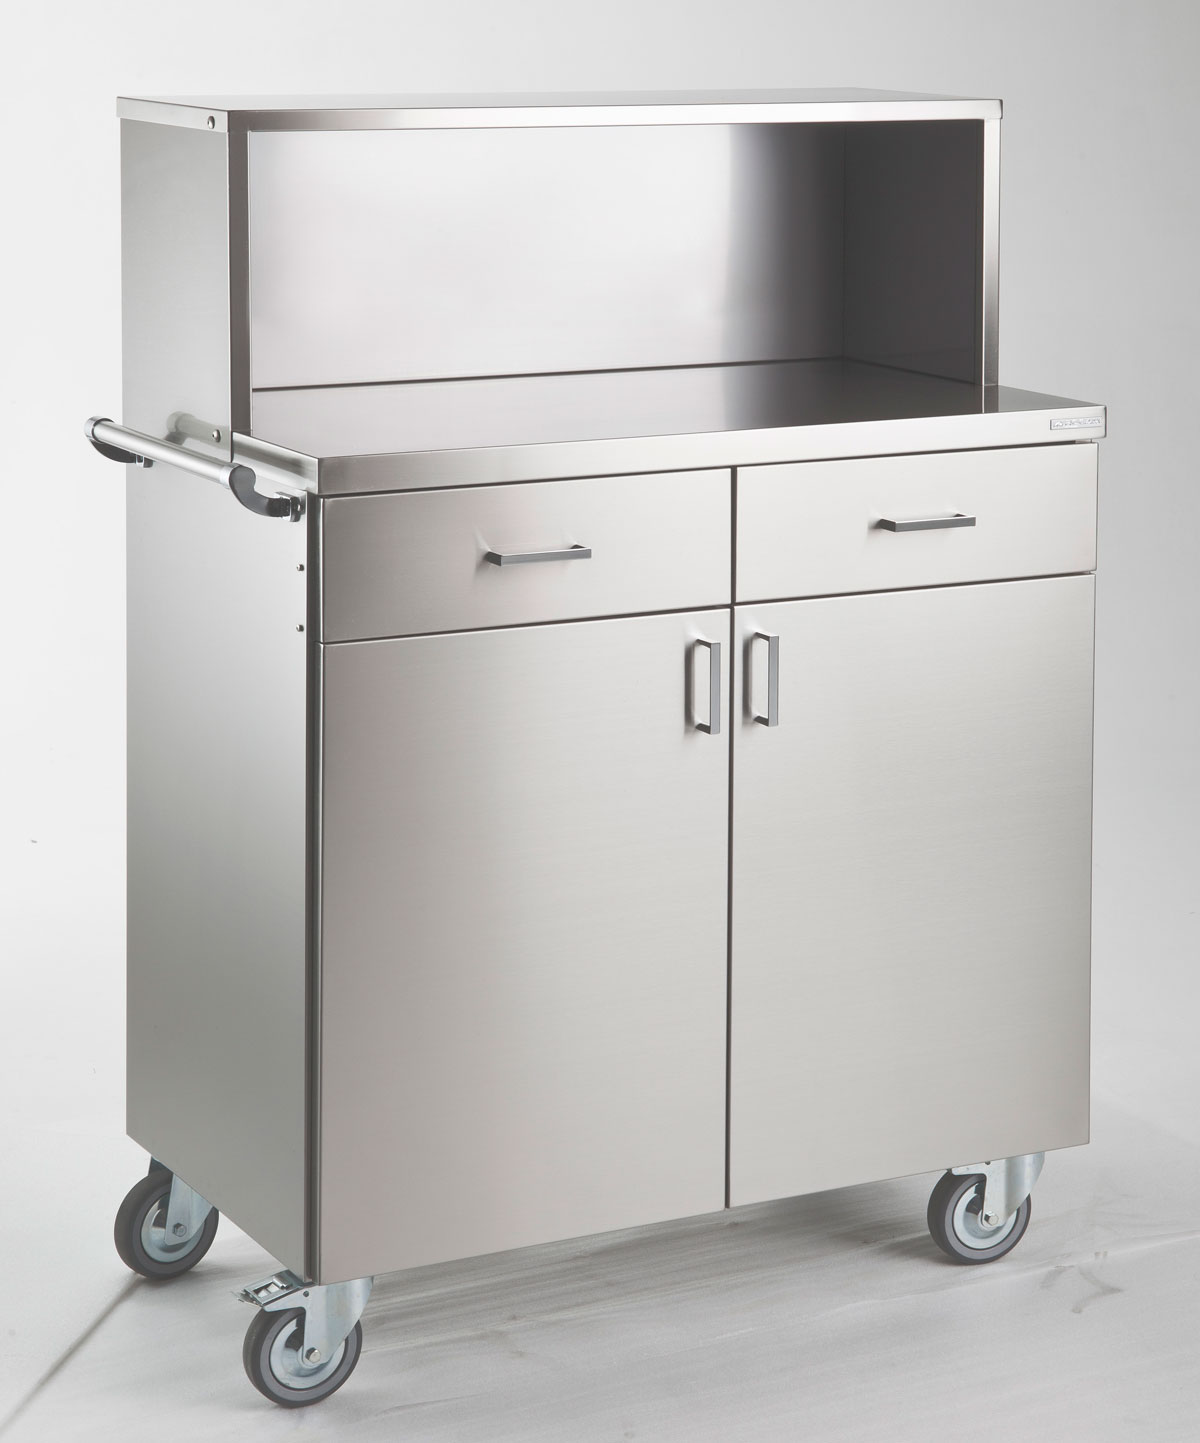 Waiter station ROCAM POLAR 2 AL INOX, 2 drawers, 2 doors, upper drawer closed by a small door, castors, handle, Stainless steel, 965*533*1052 mm.